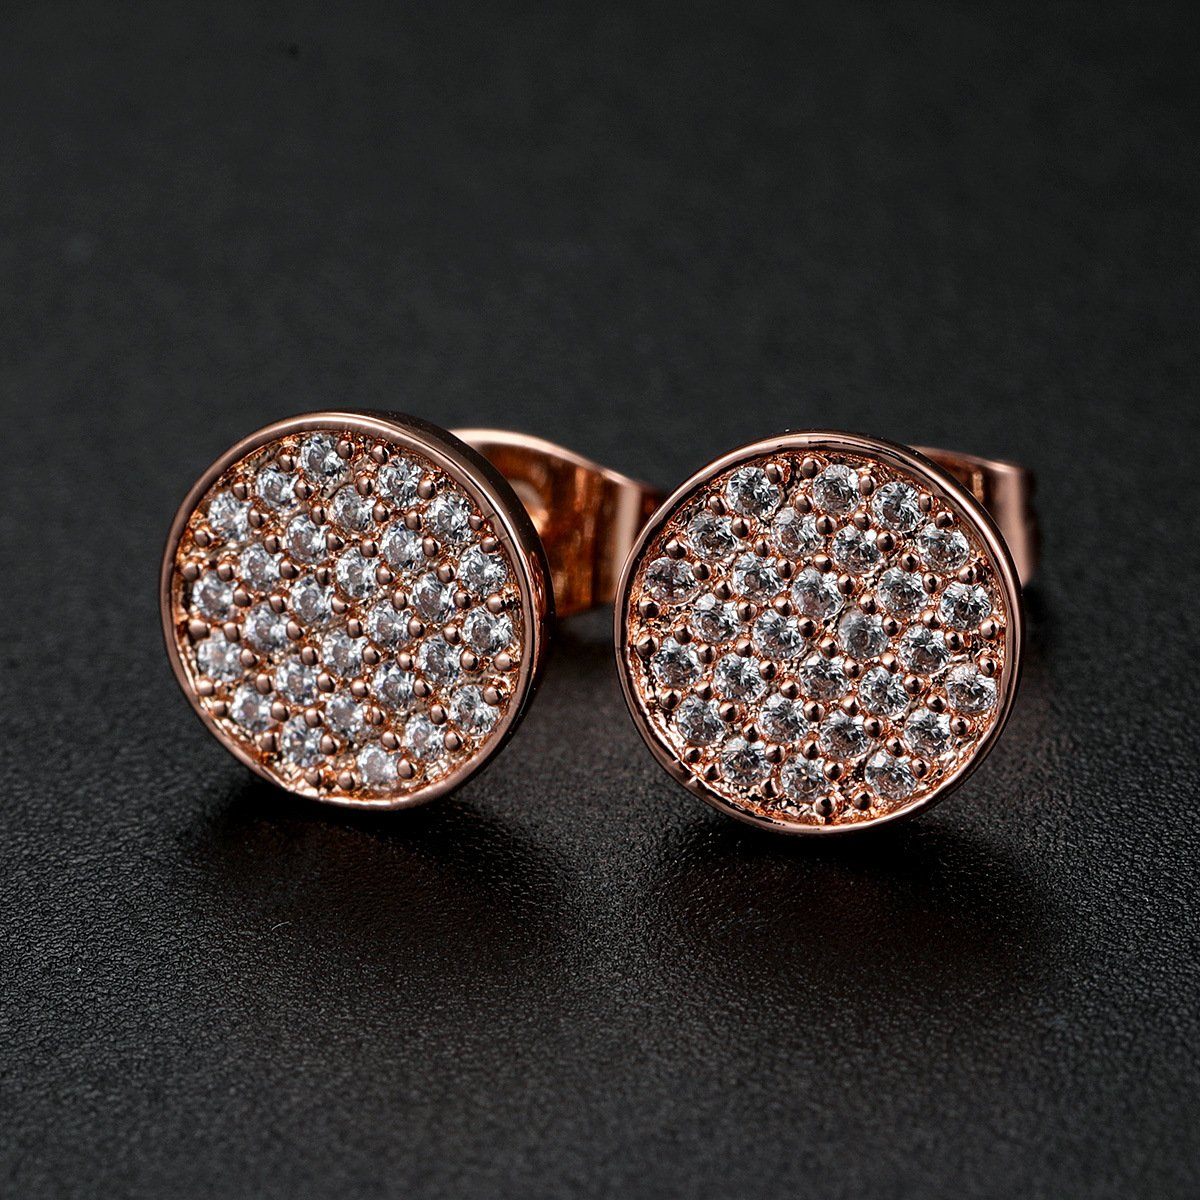 Zhang Trading 18K Gold Plated Full Micro-Inlay CZ Stud Earrings for Fashion OL